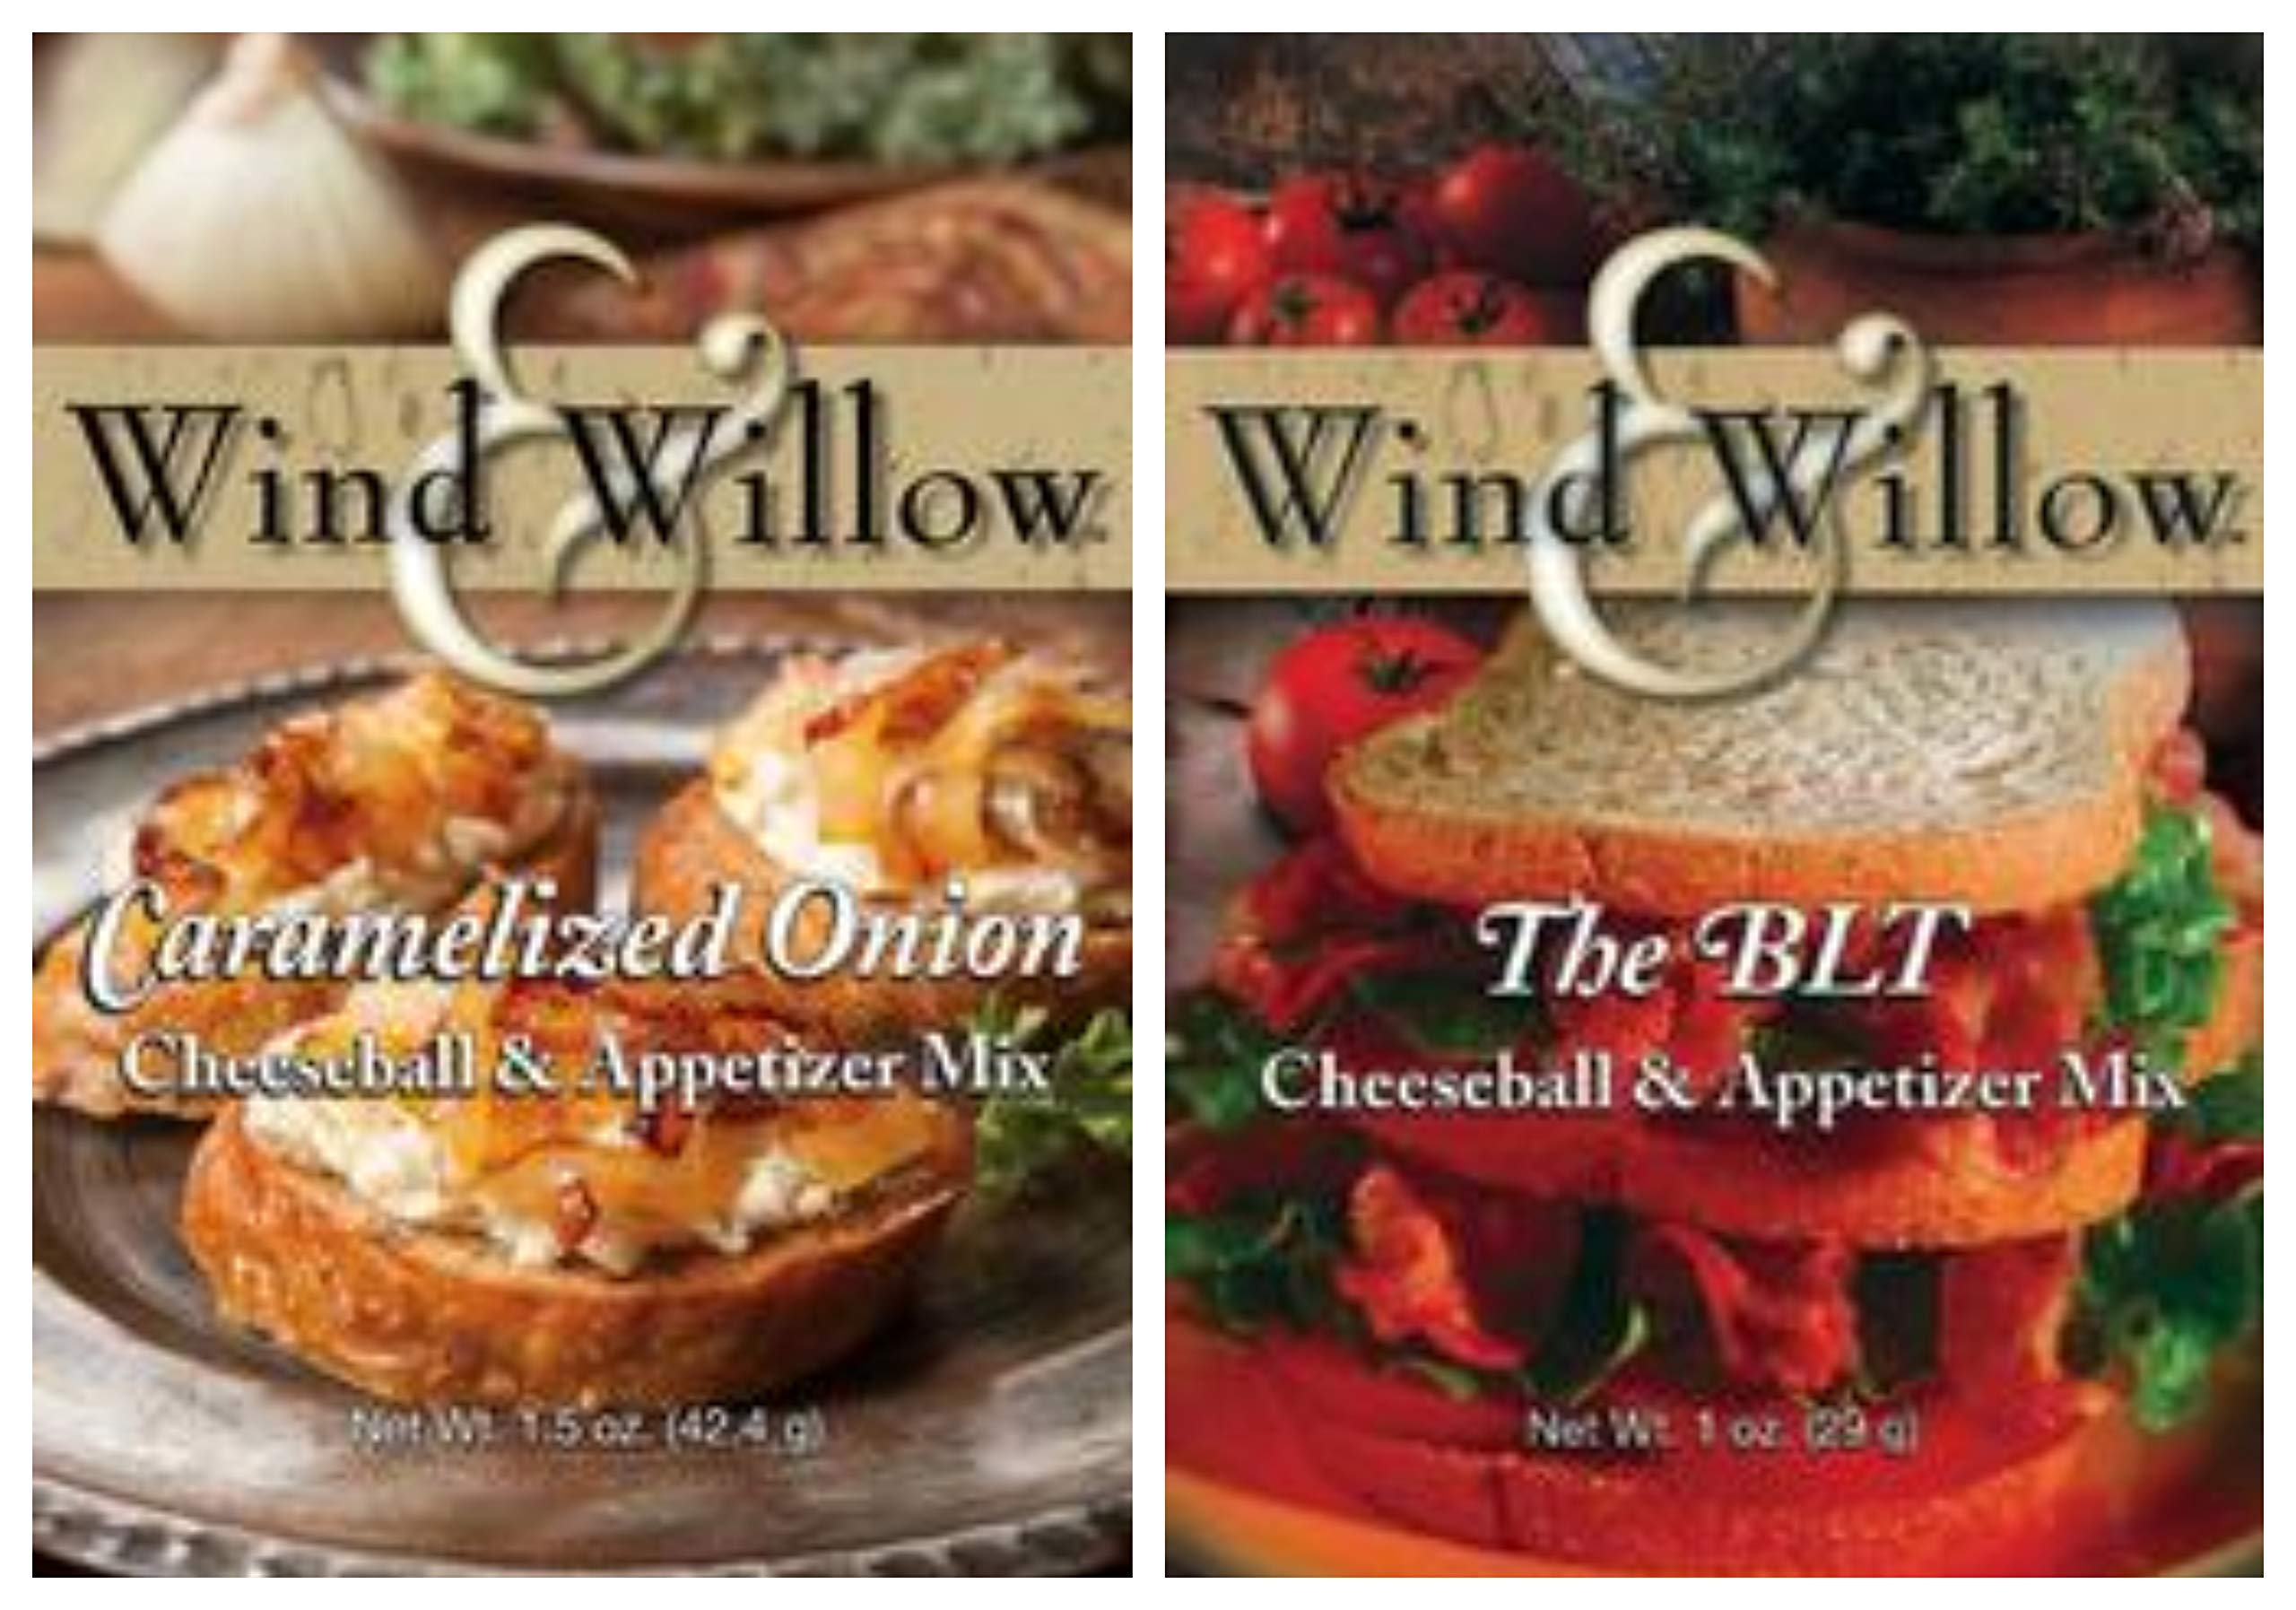 Wind & Willow Savory Cheeseball & Appetizer Mix Bundle (2 Pack): (1) Carmelized Onion and (1) BLT by Wind & Willow